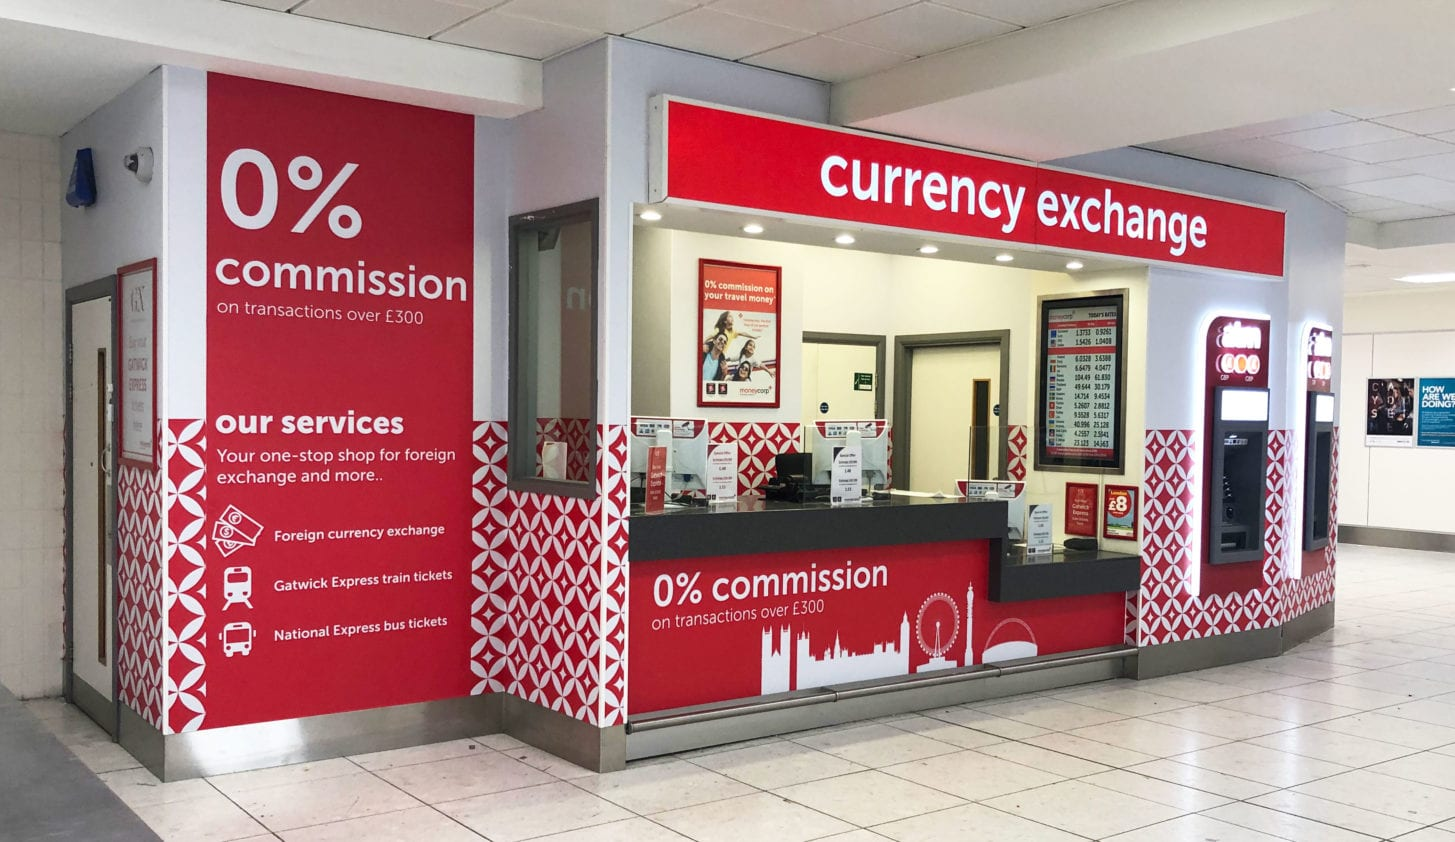 moneycorp airport retail popup